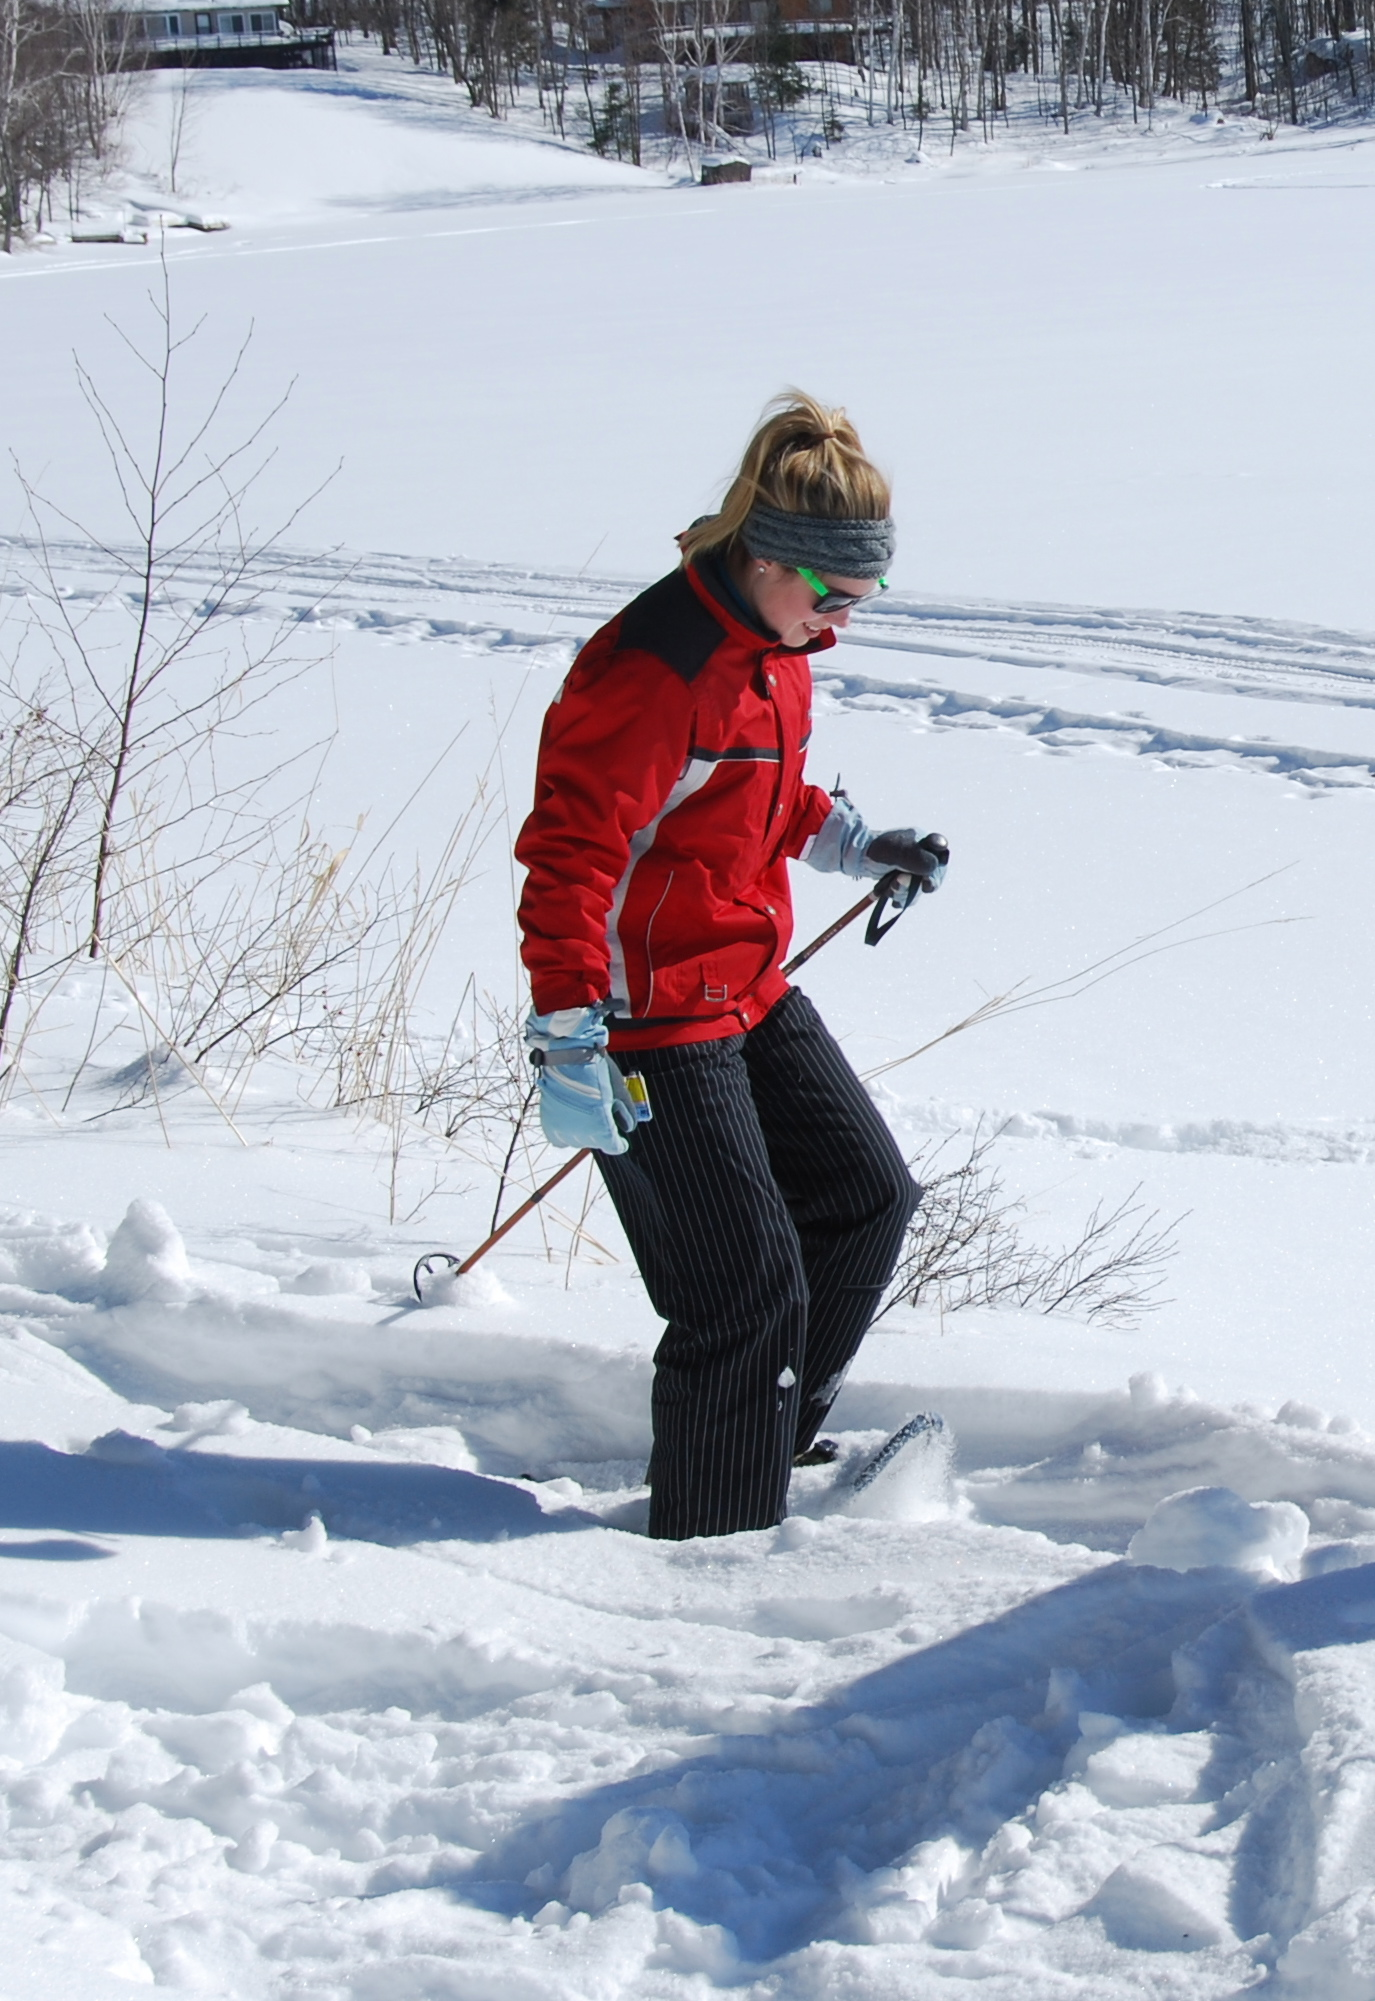 Snowshoeing is a great way to hike in the winter! Photo by Mark Jansen